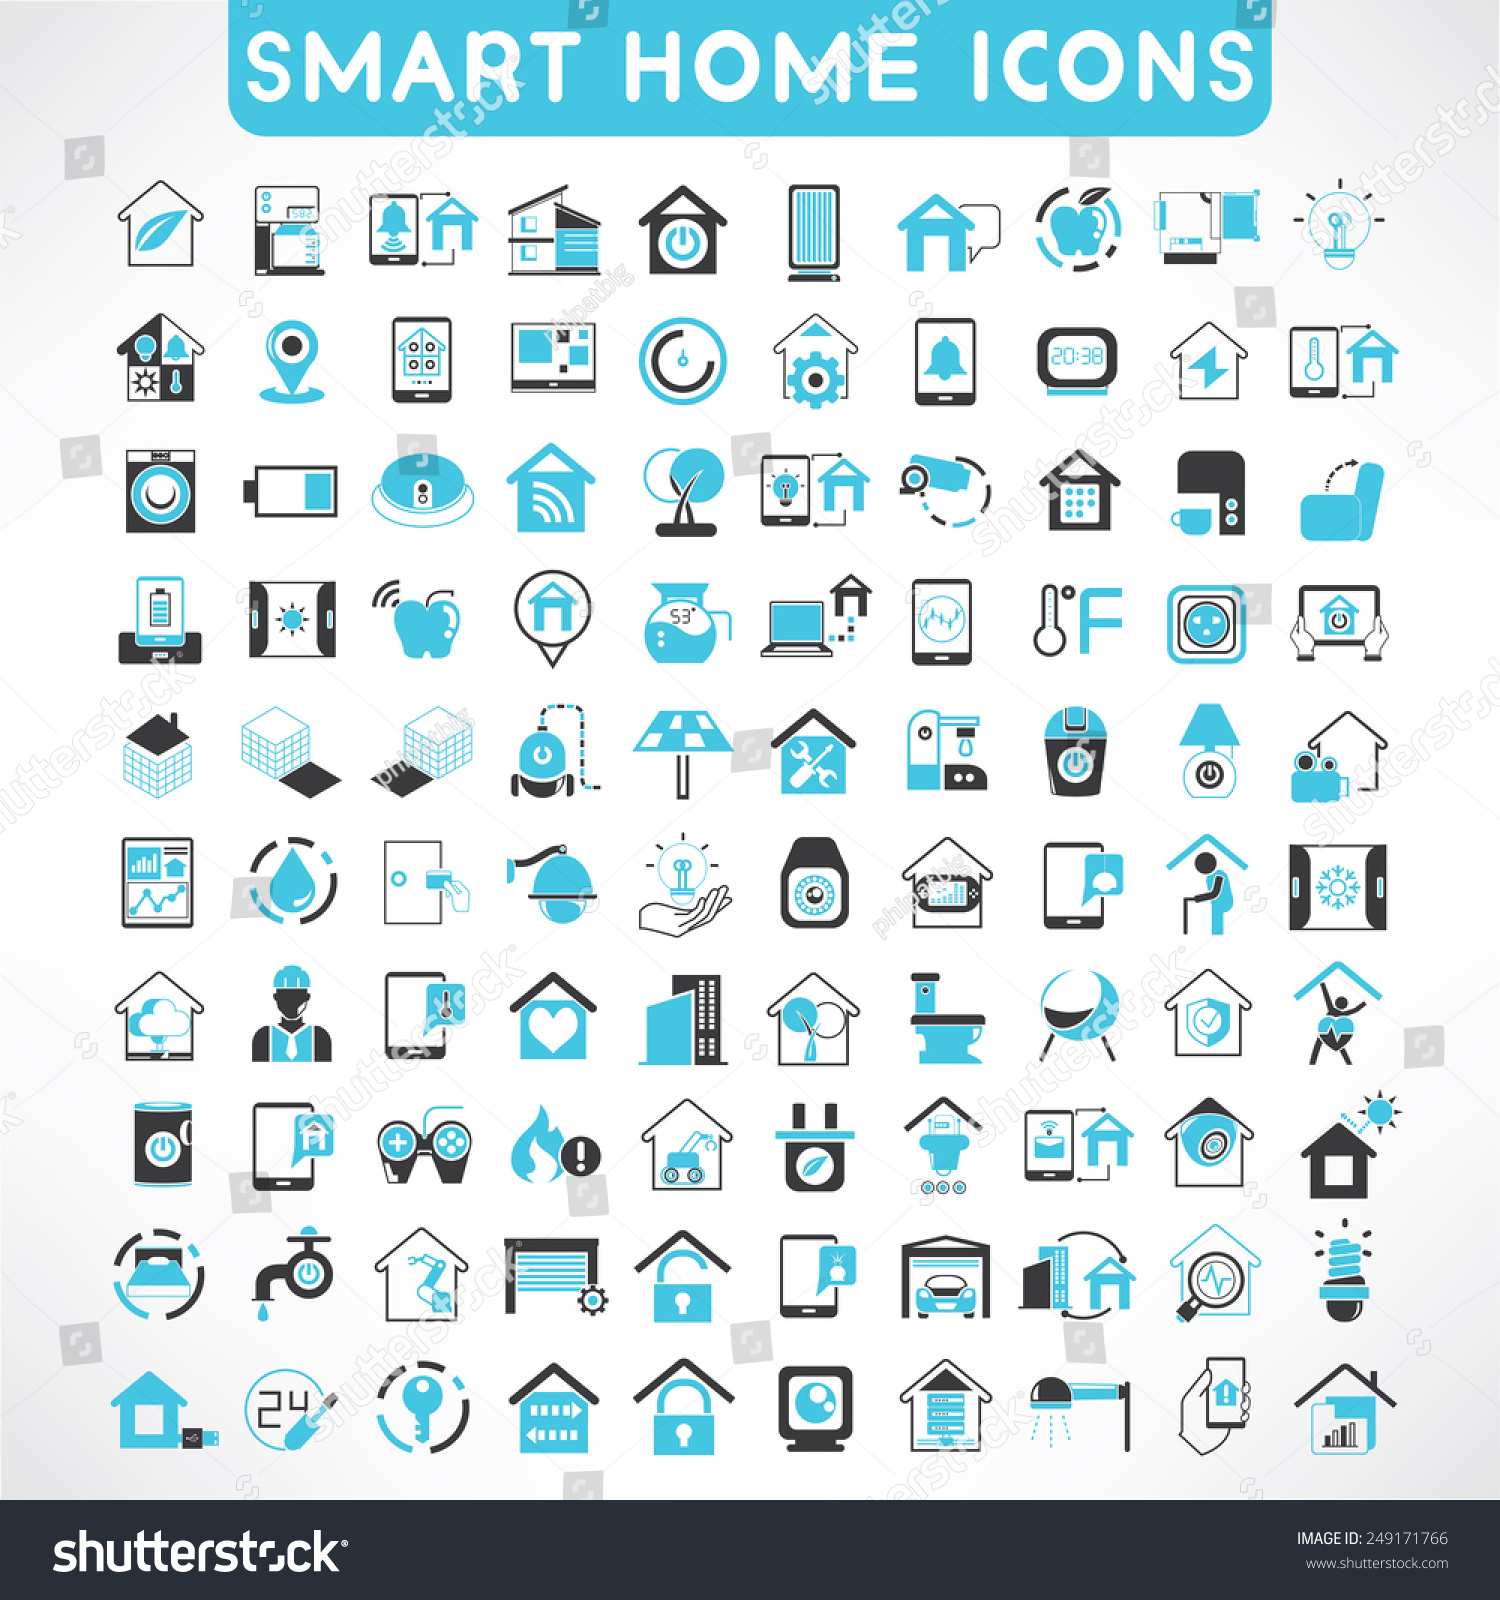 Image gallery homepage icon set for Smart home automation